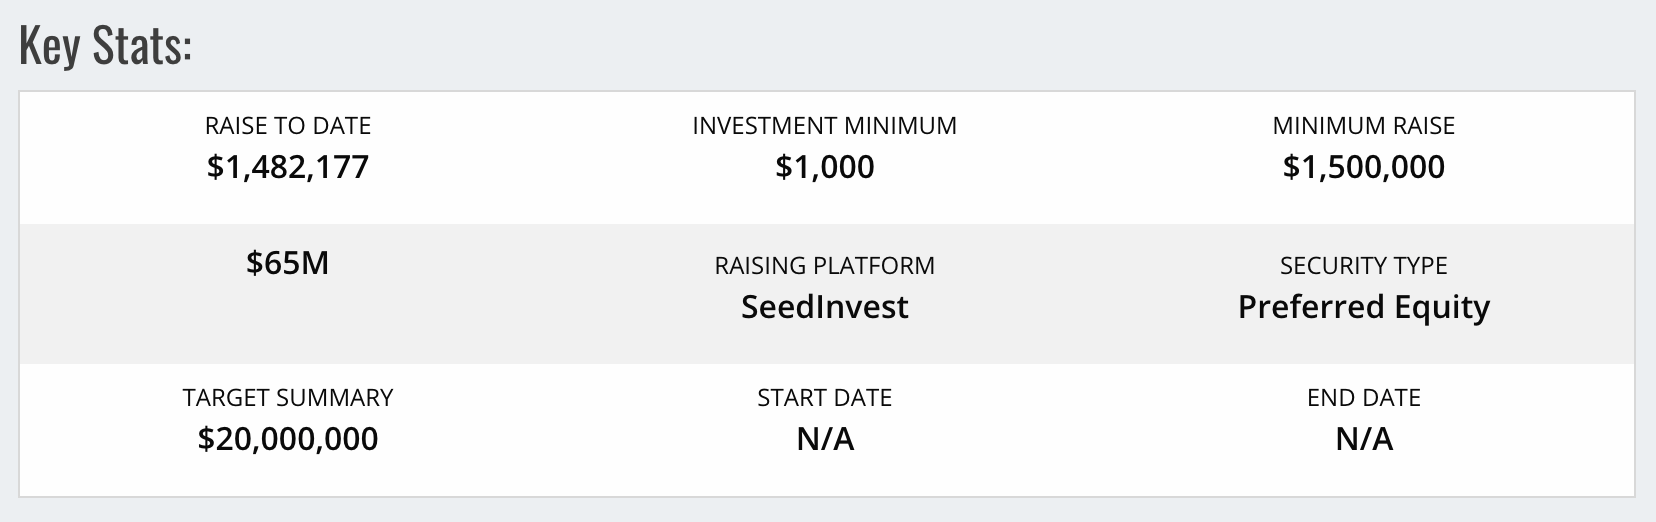 NowRx Investment Key Stats